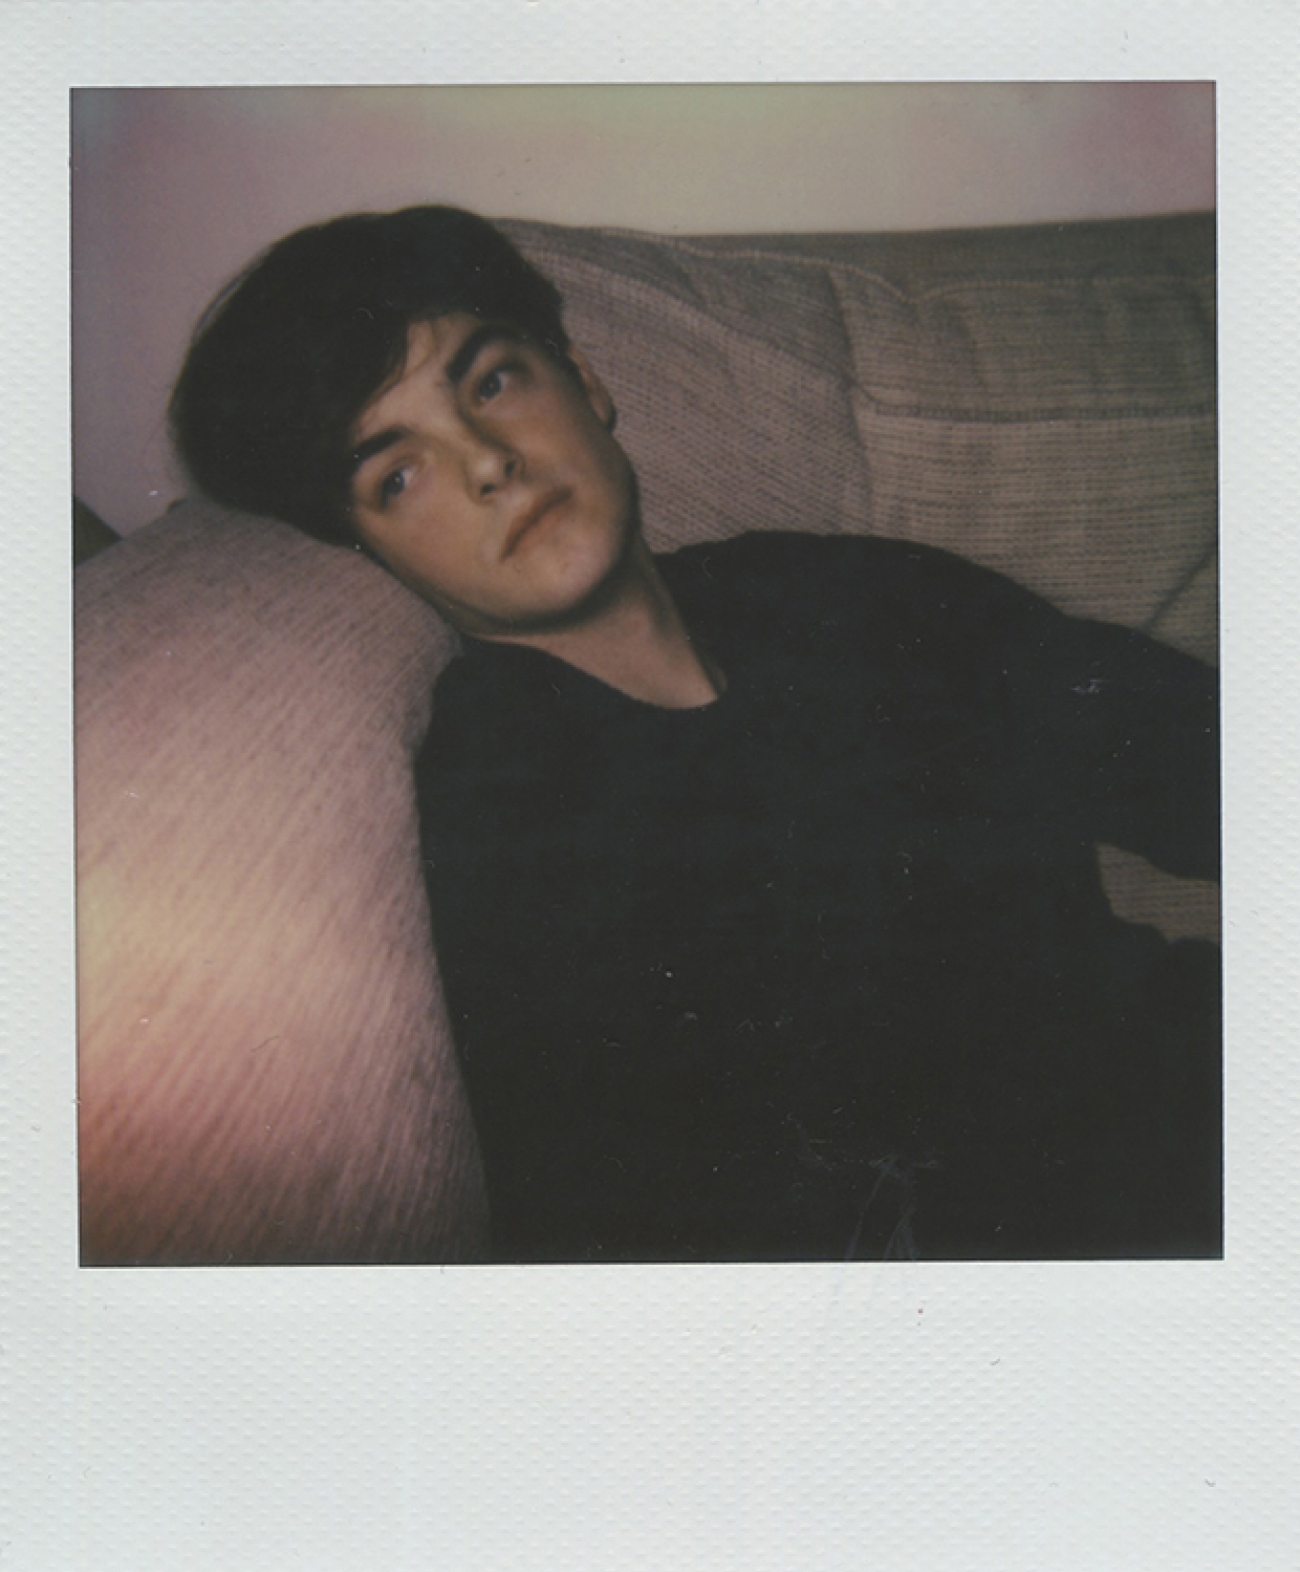 Mike Polariod